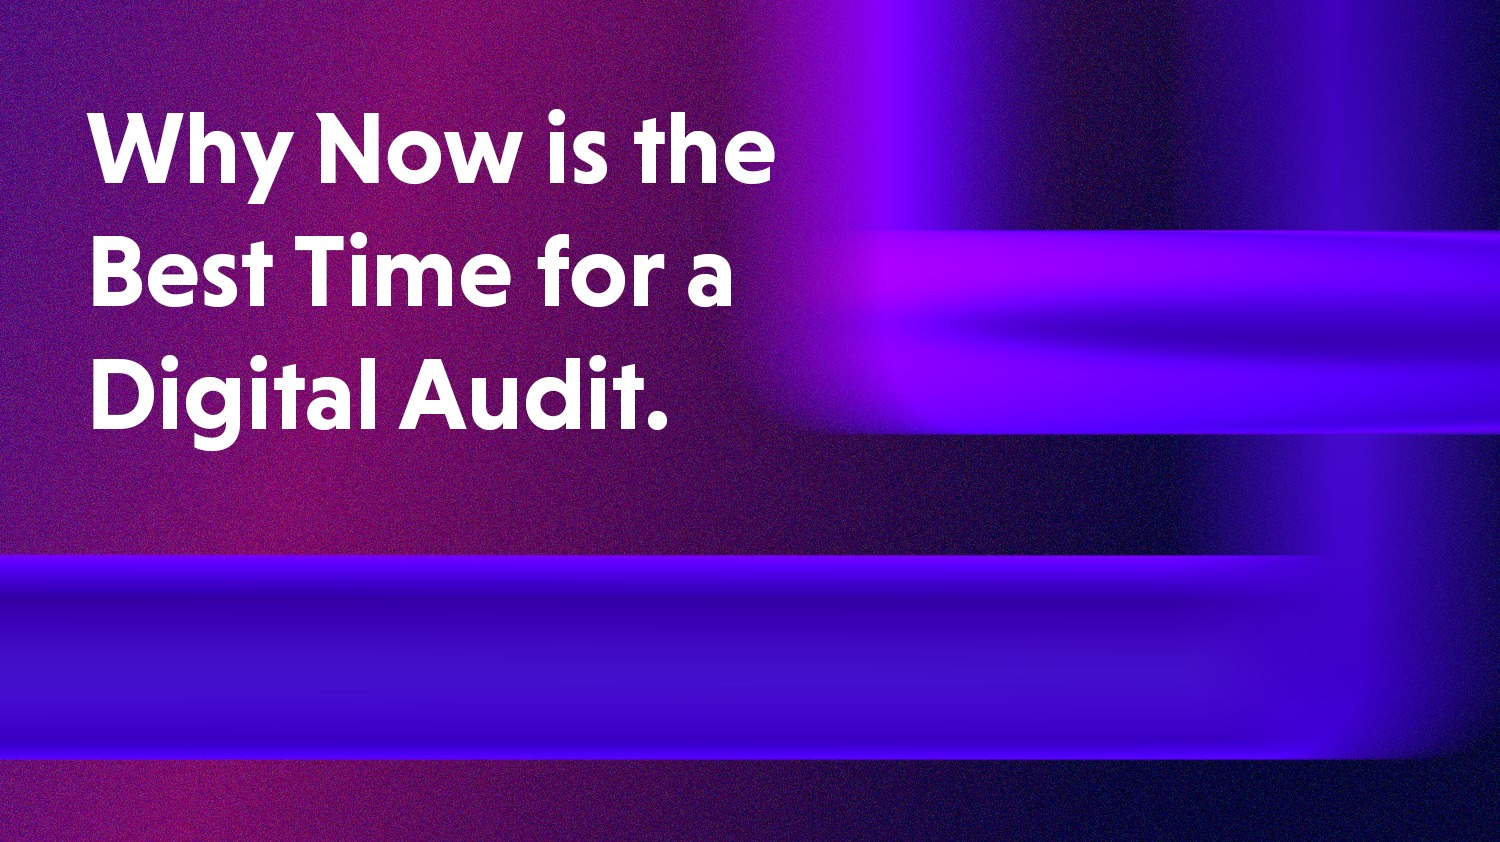 Why Now is the Best Time for a Digital Audit